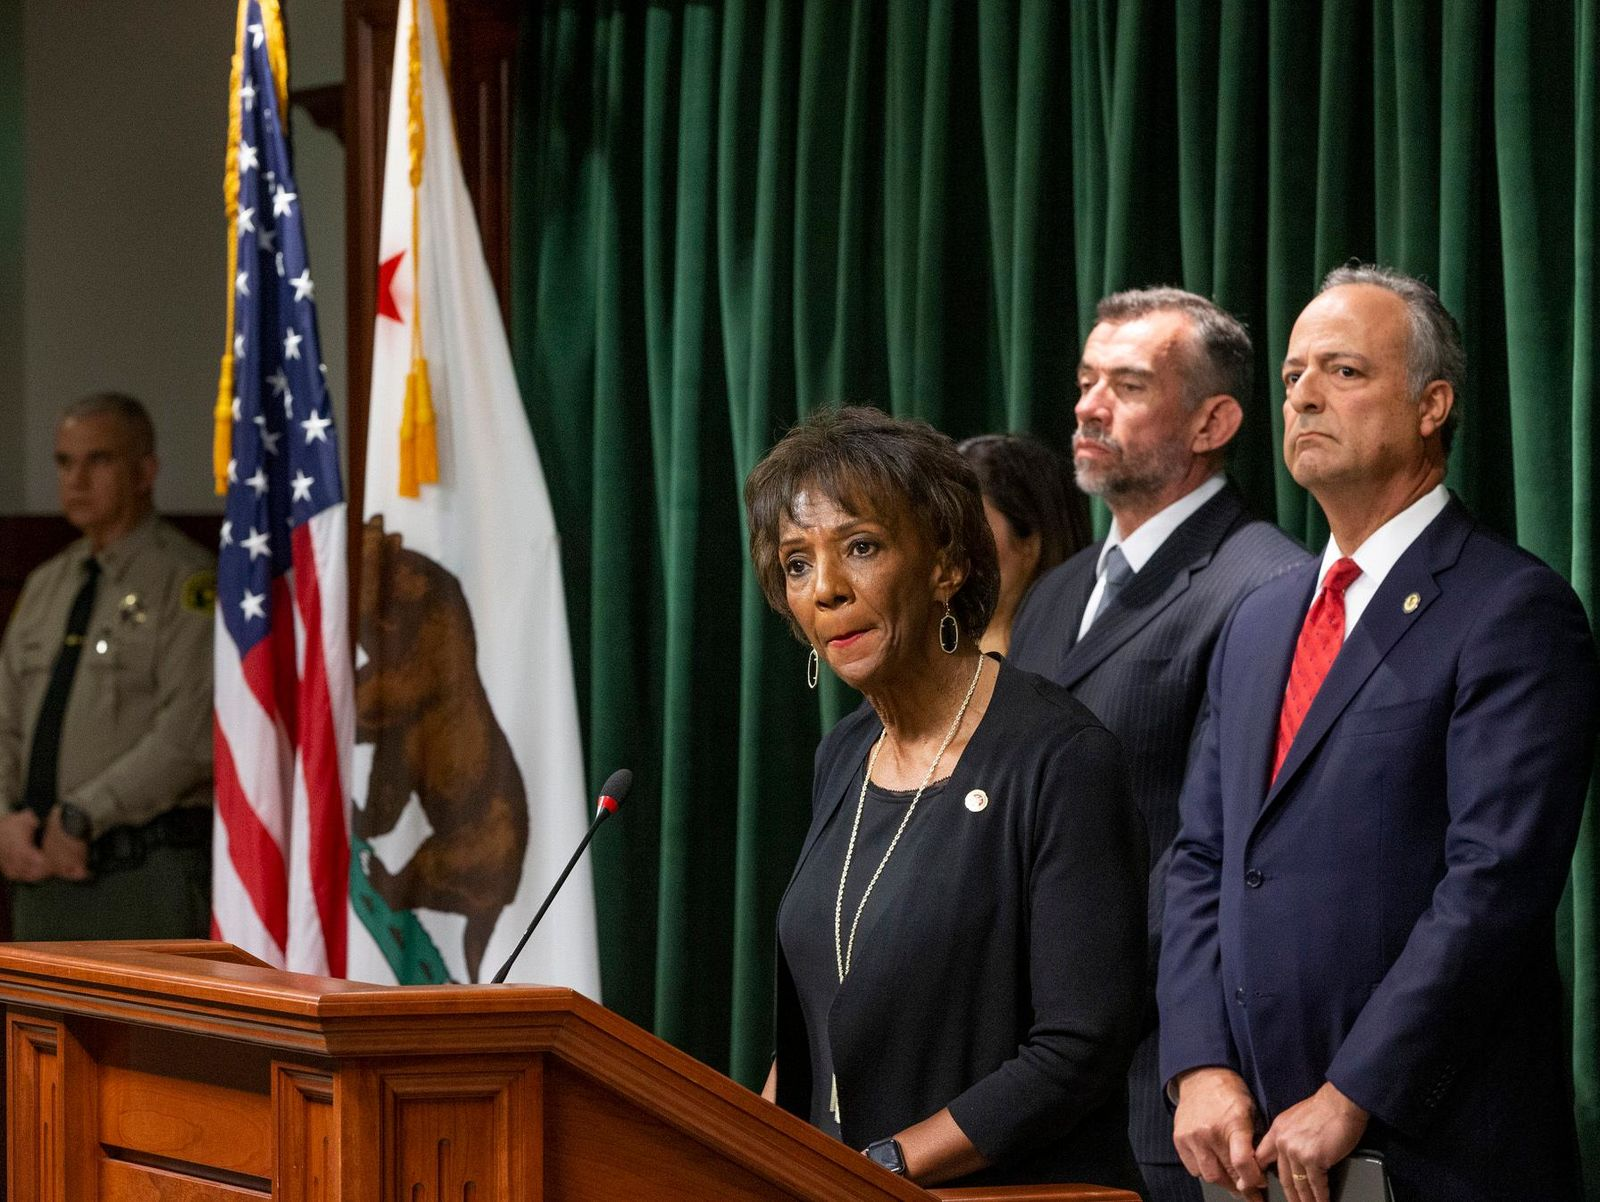 Los Angeles County District Attorney, Jackie Lacey, at podium, is joined by deputy special agent in charge of the DEA's Los Angeles division, William Bodner, second from right, and U.S. Attorney Nick Hanna, far right, during a news conference about the arrest of Ed Buck the prominent LGBTQ political activist, in Los Angeles, Thursday, Sept. 19, 2019. Federal prosecutors will ask a judge to hold Buck without bond pending his trial on charges connected to a drug death at his Los Angeles-area home. (AP Photo/Damian Dovarganes)